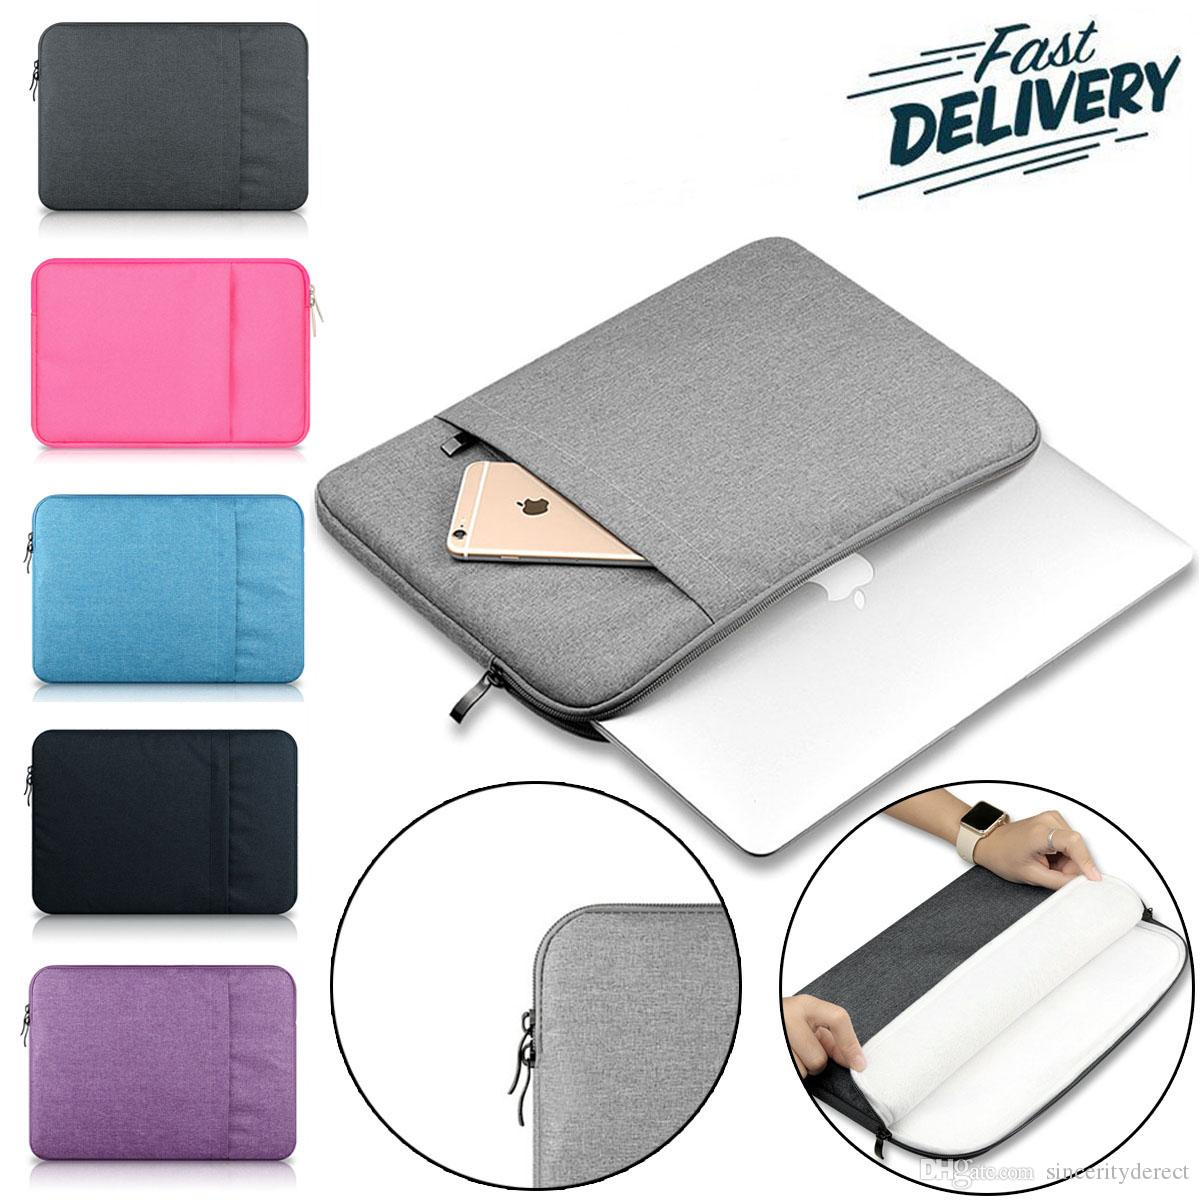 d08c9cc33a97 Laptop Sleeve Drop-proof Dust for 13-15 inch Notebook Bag For iPad Pro  Apple ASUS Lenovo Dell,Portable 360° Protective Carrying Case Bag